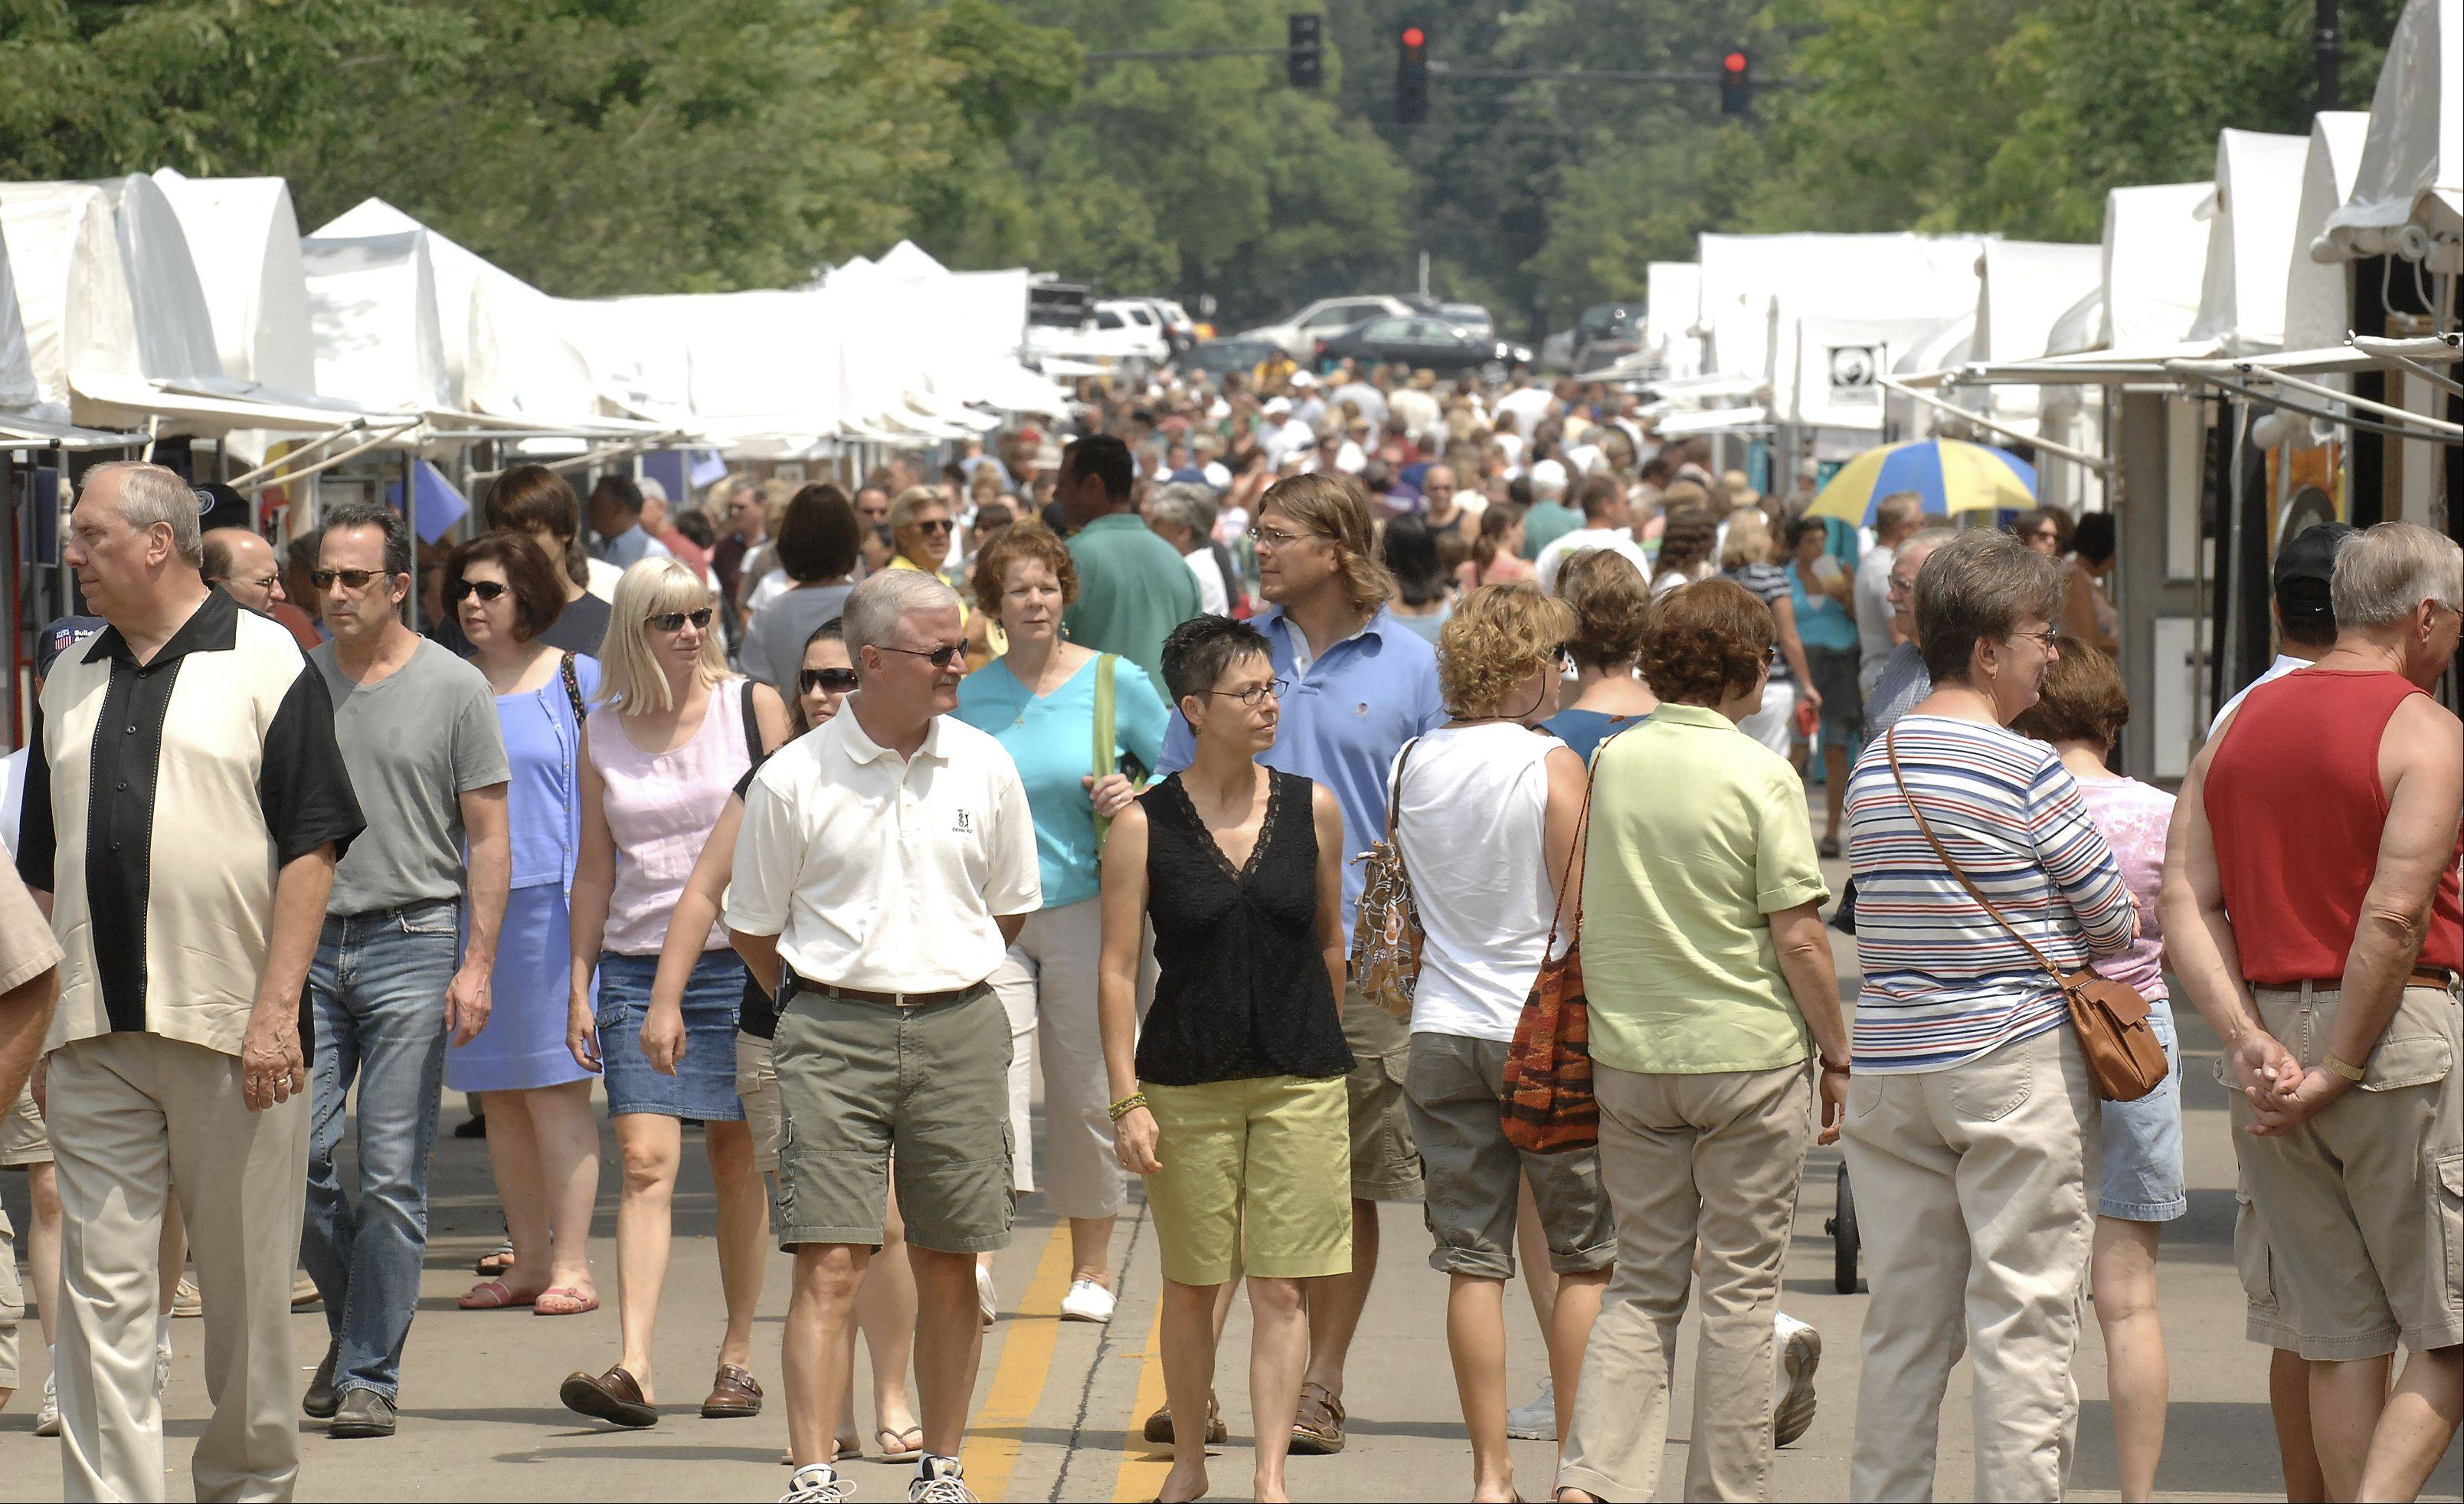 Third Street in downtown Geneva is packed by shoppers attending the seventh annual Geneva Arts Fair. The fair features 150 juried artists and their work.